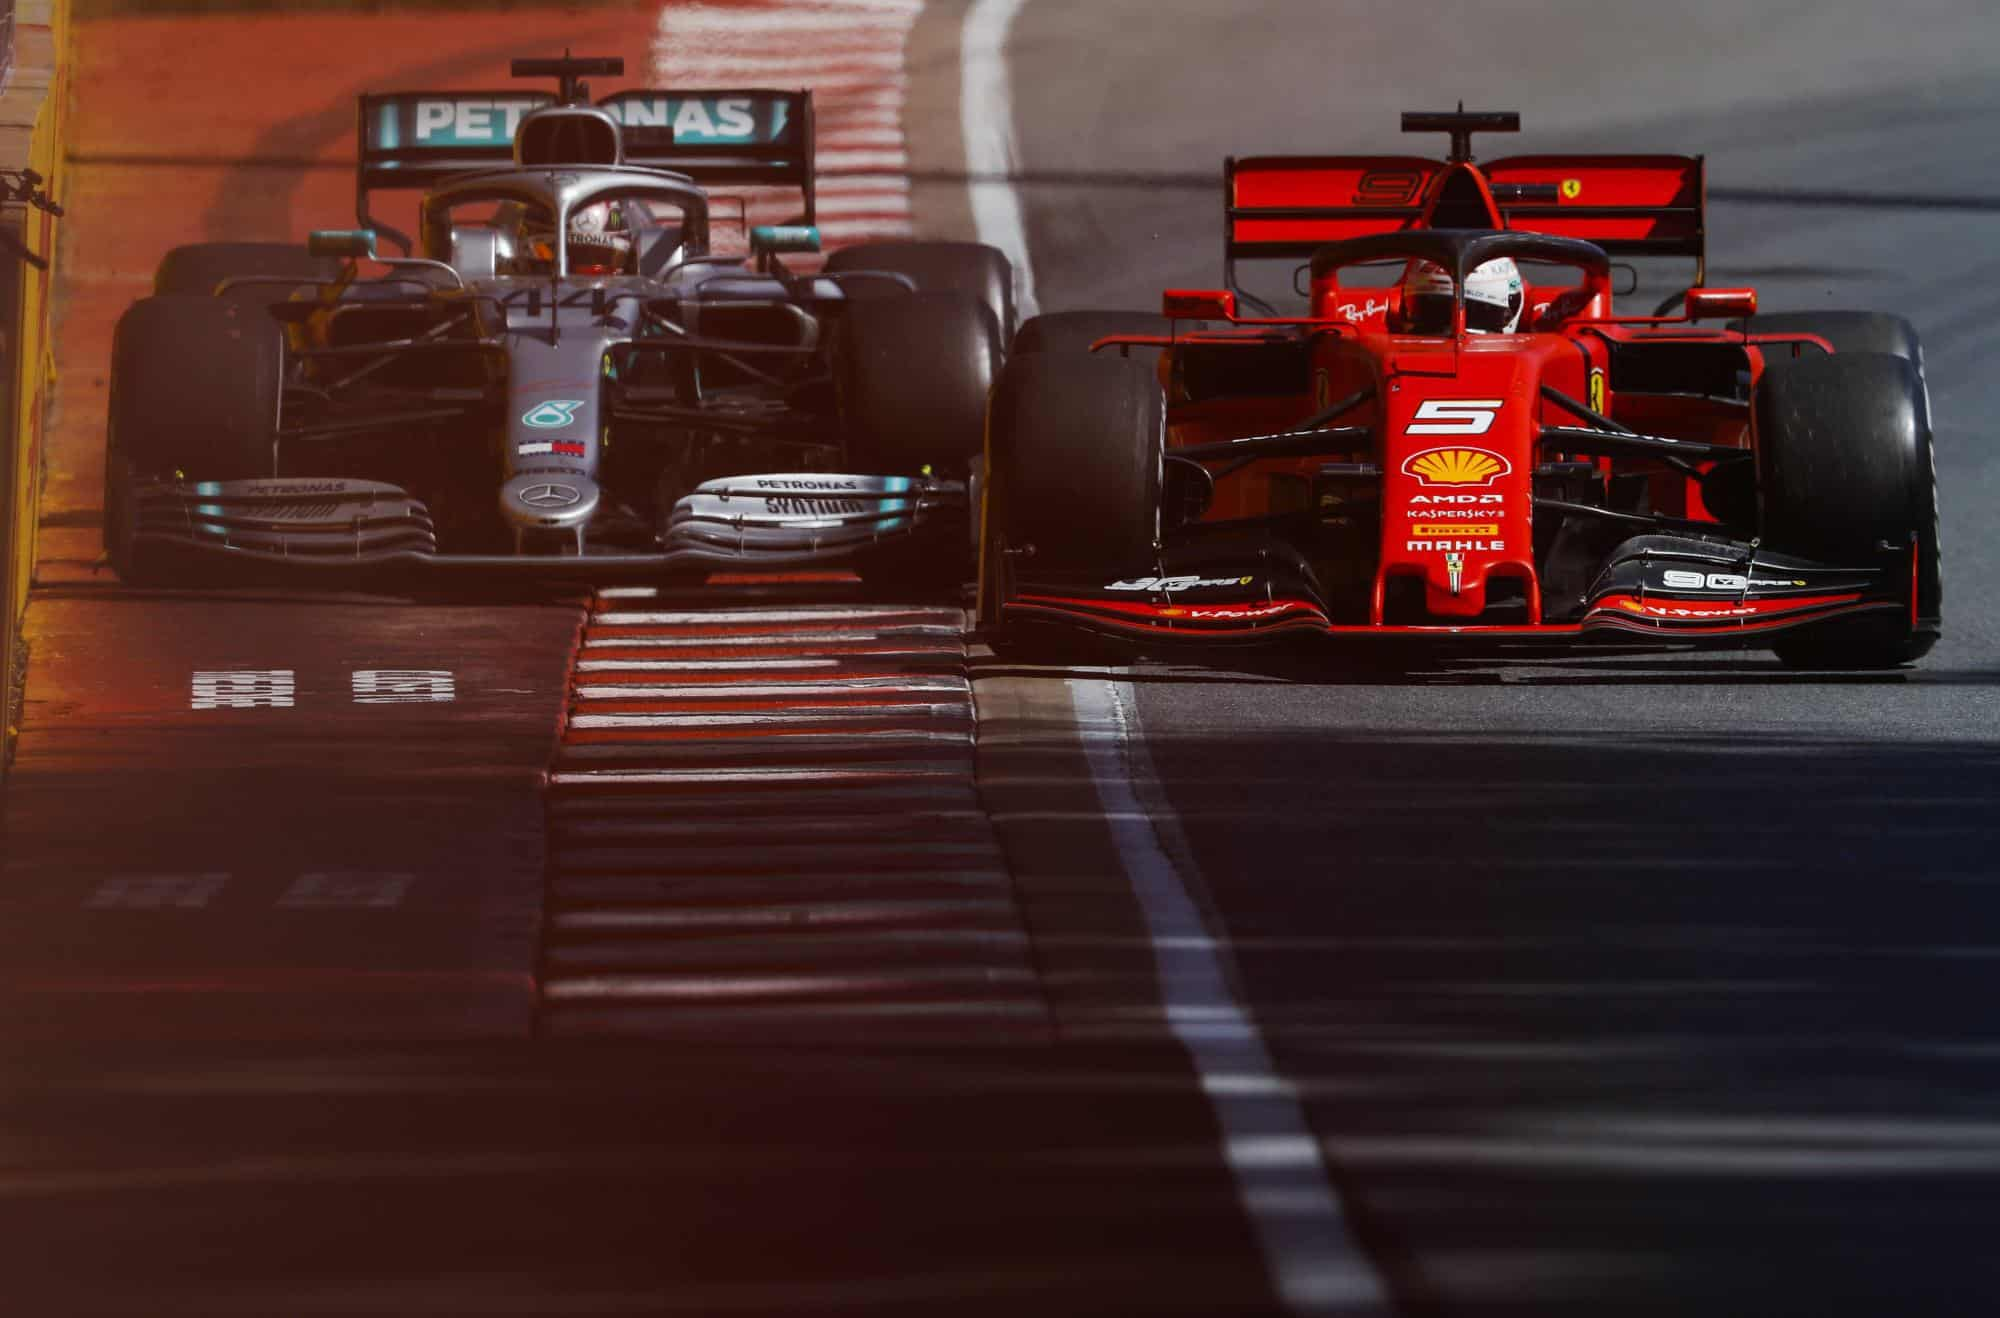 Lewis Hamilton Mercedes F1 W10 and Sebastian Vettel Ferrari SF90 Canadian GP F1 2019 celebrating victory Photo Daimler